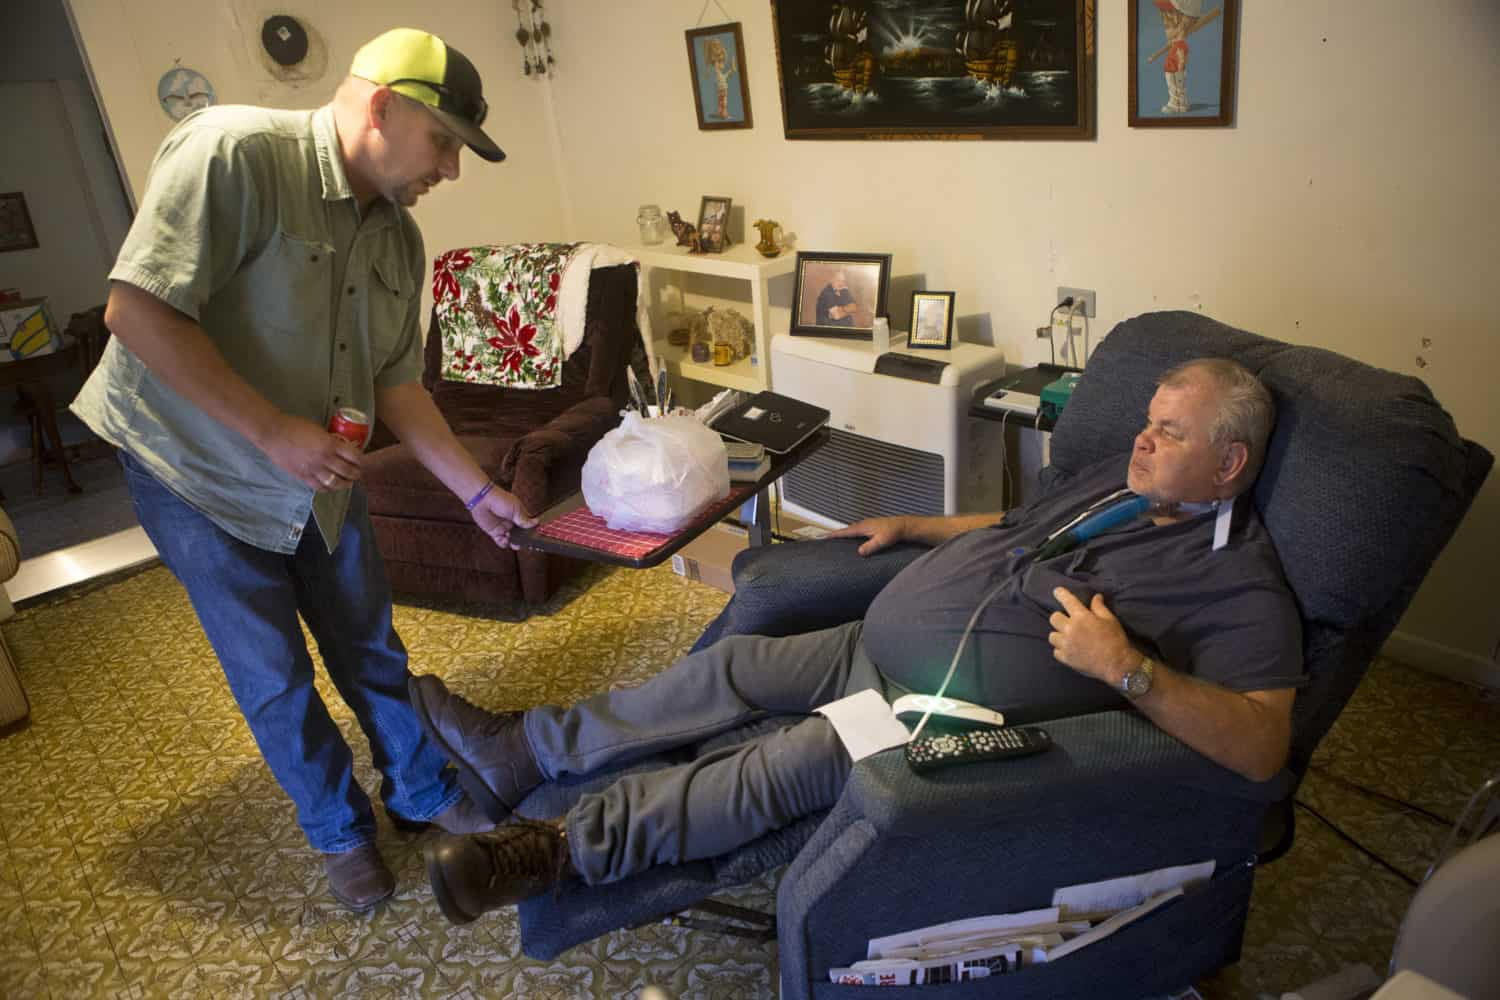 On man brings food to another man who's sitting in a lounger chair tethered to an oxygen tank. The second may is experiencing food insecurity.